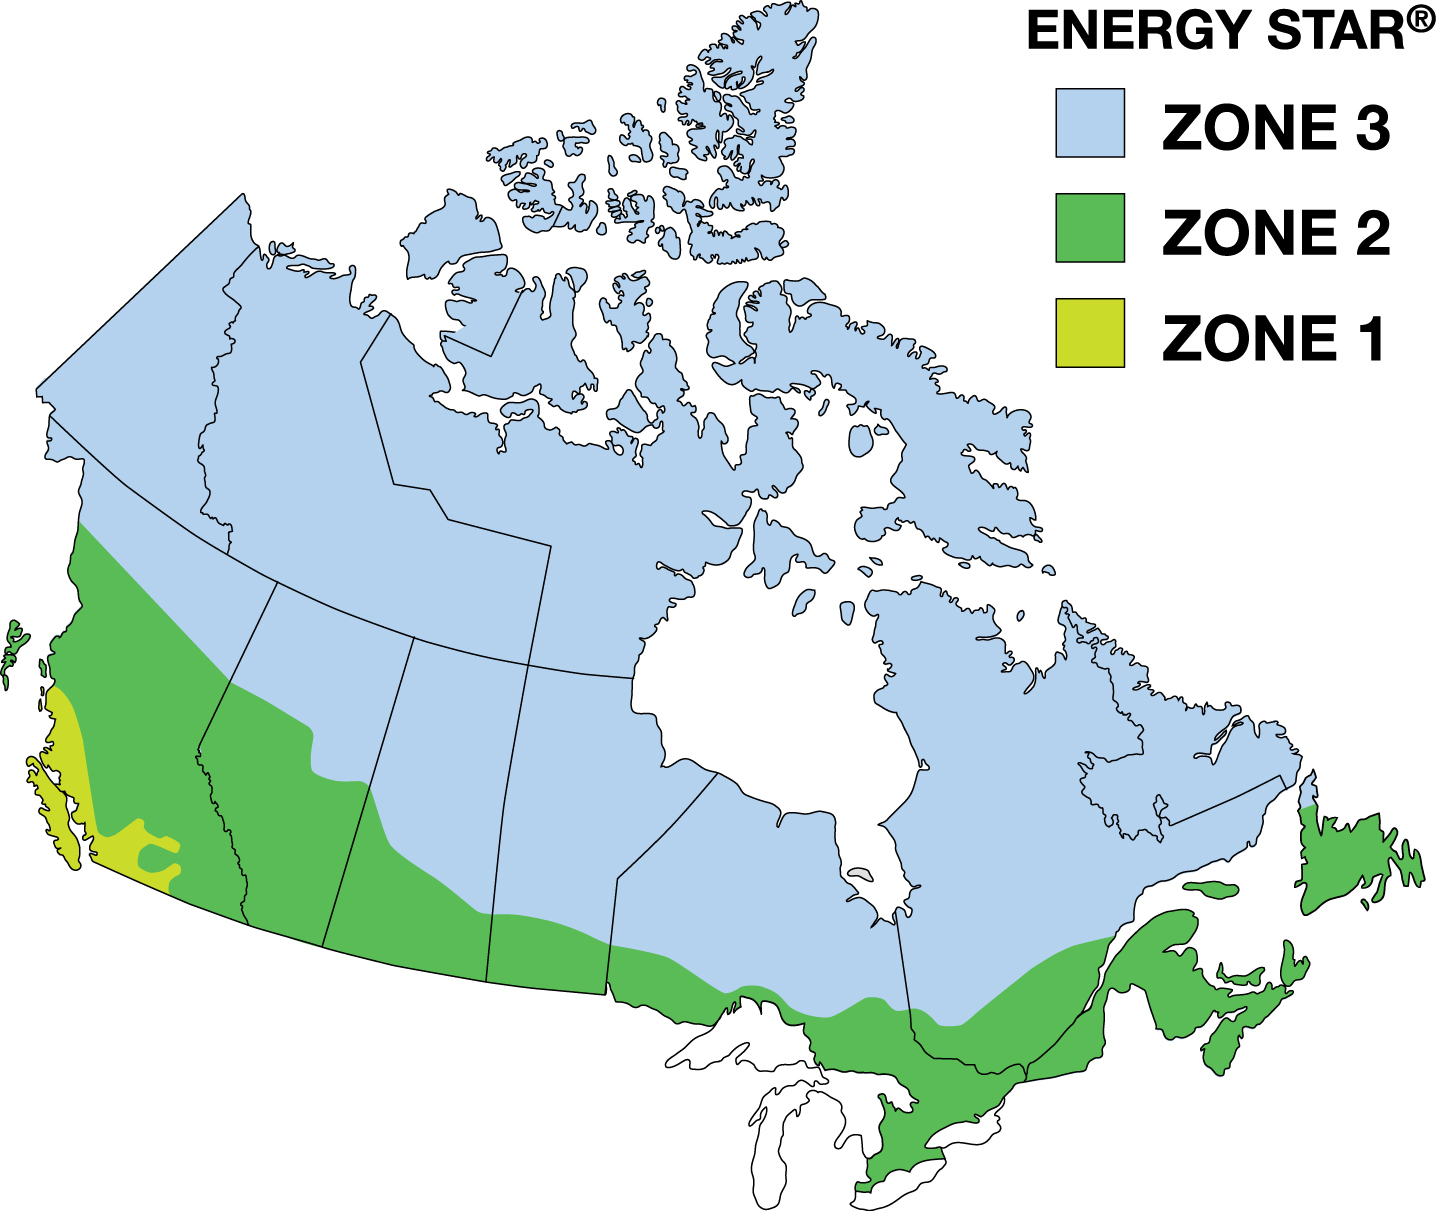 Climate zone map divided into three zones.